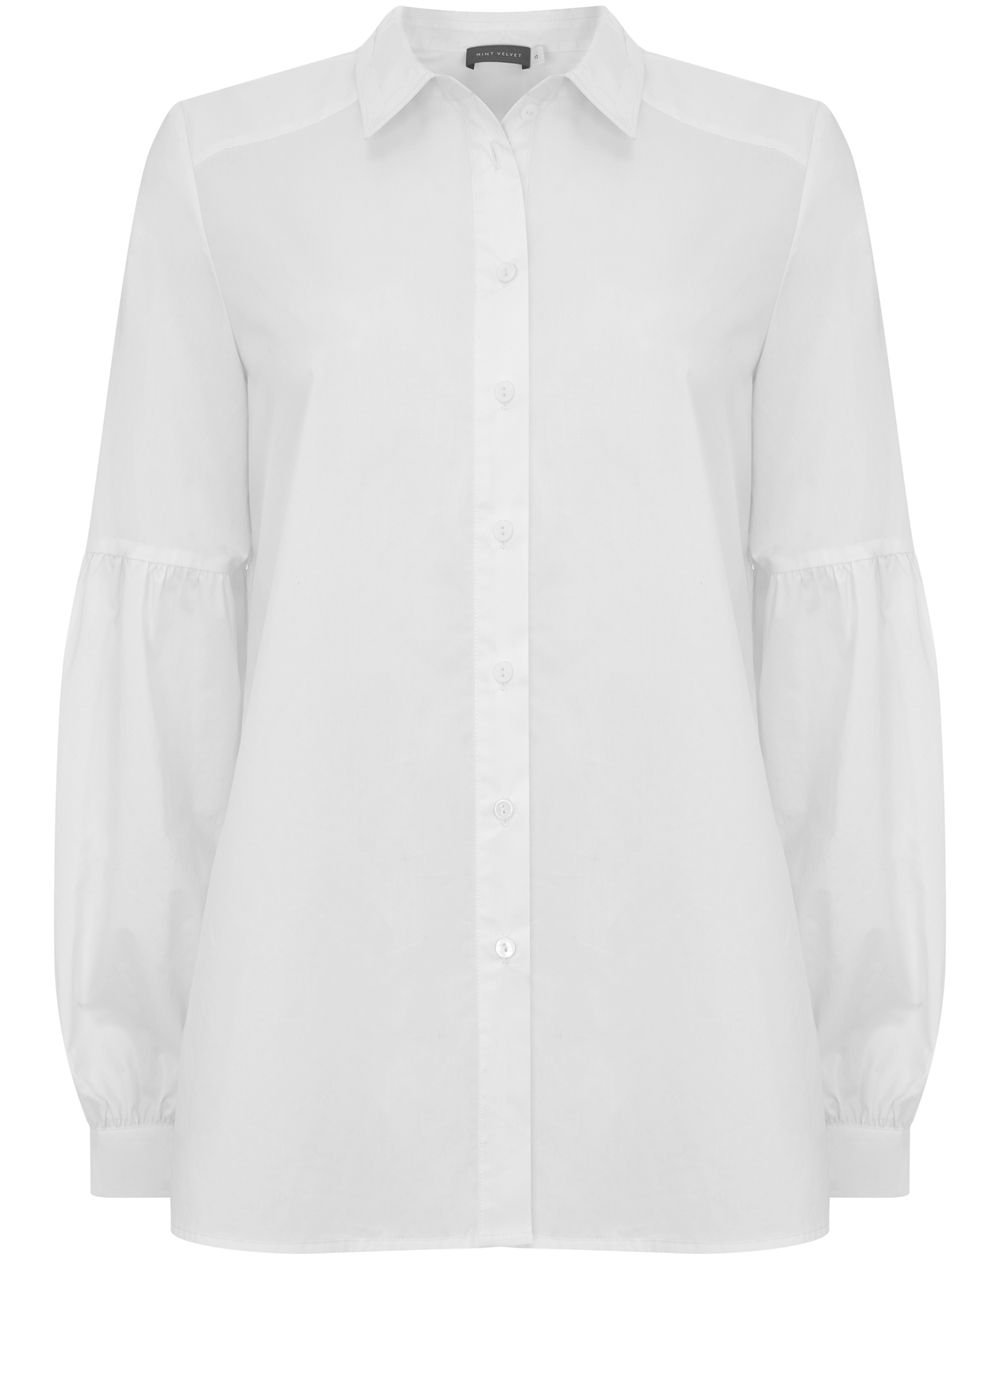 Mint Velvet Ivory Tie Back Cotton Shirt, White